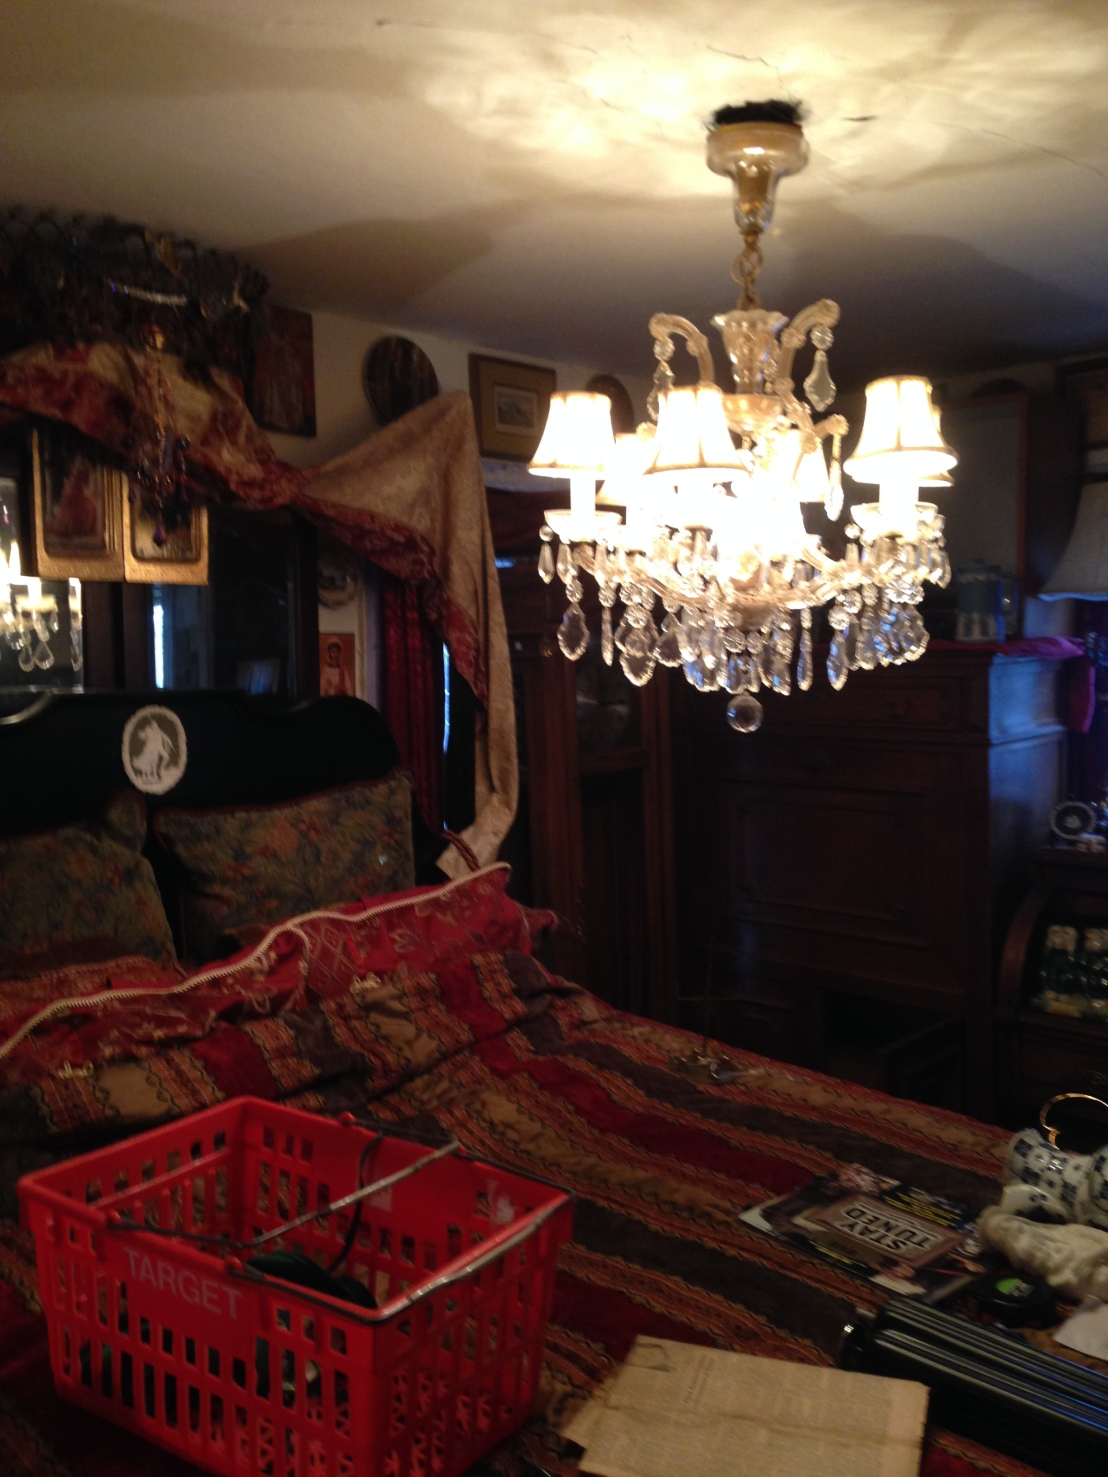 Hoarder House Estate Sale (Part 2): A Tour of the House